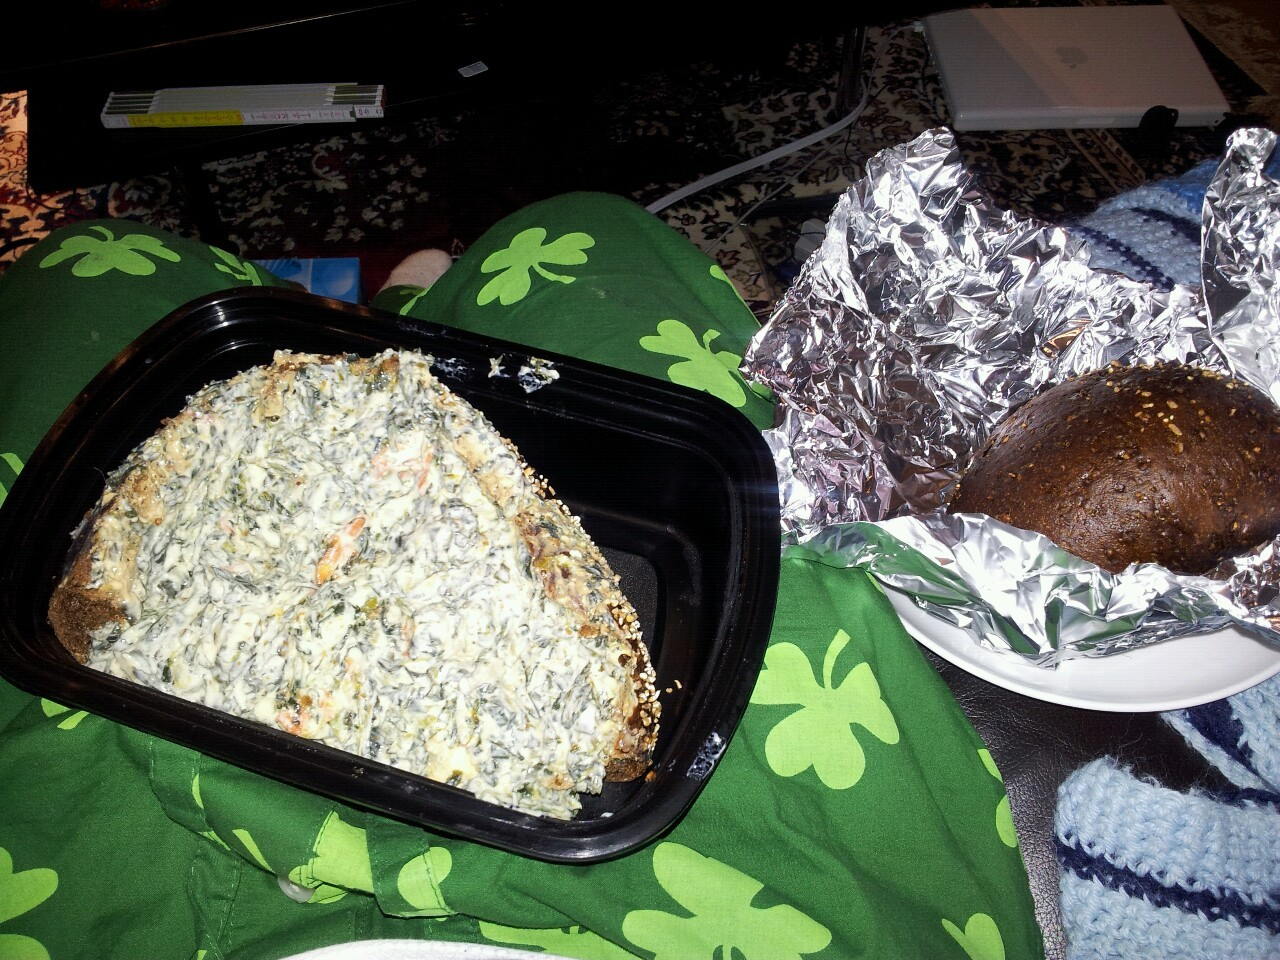 I'm eating leftover spinach dip with pumpernickel and I've watched half a season of Gilmore Girls.  How late is the government office where I can turn in my Dude Card open until?